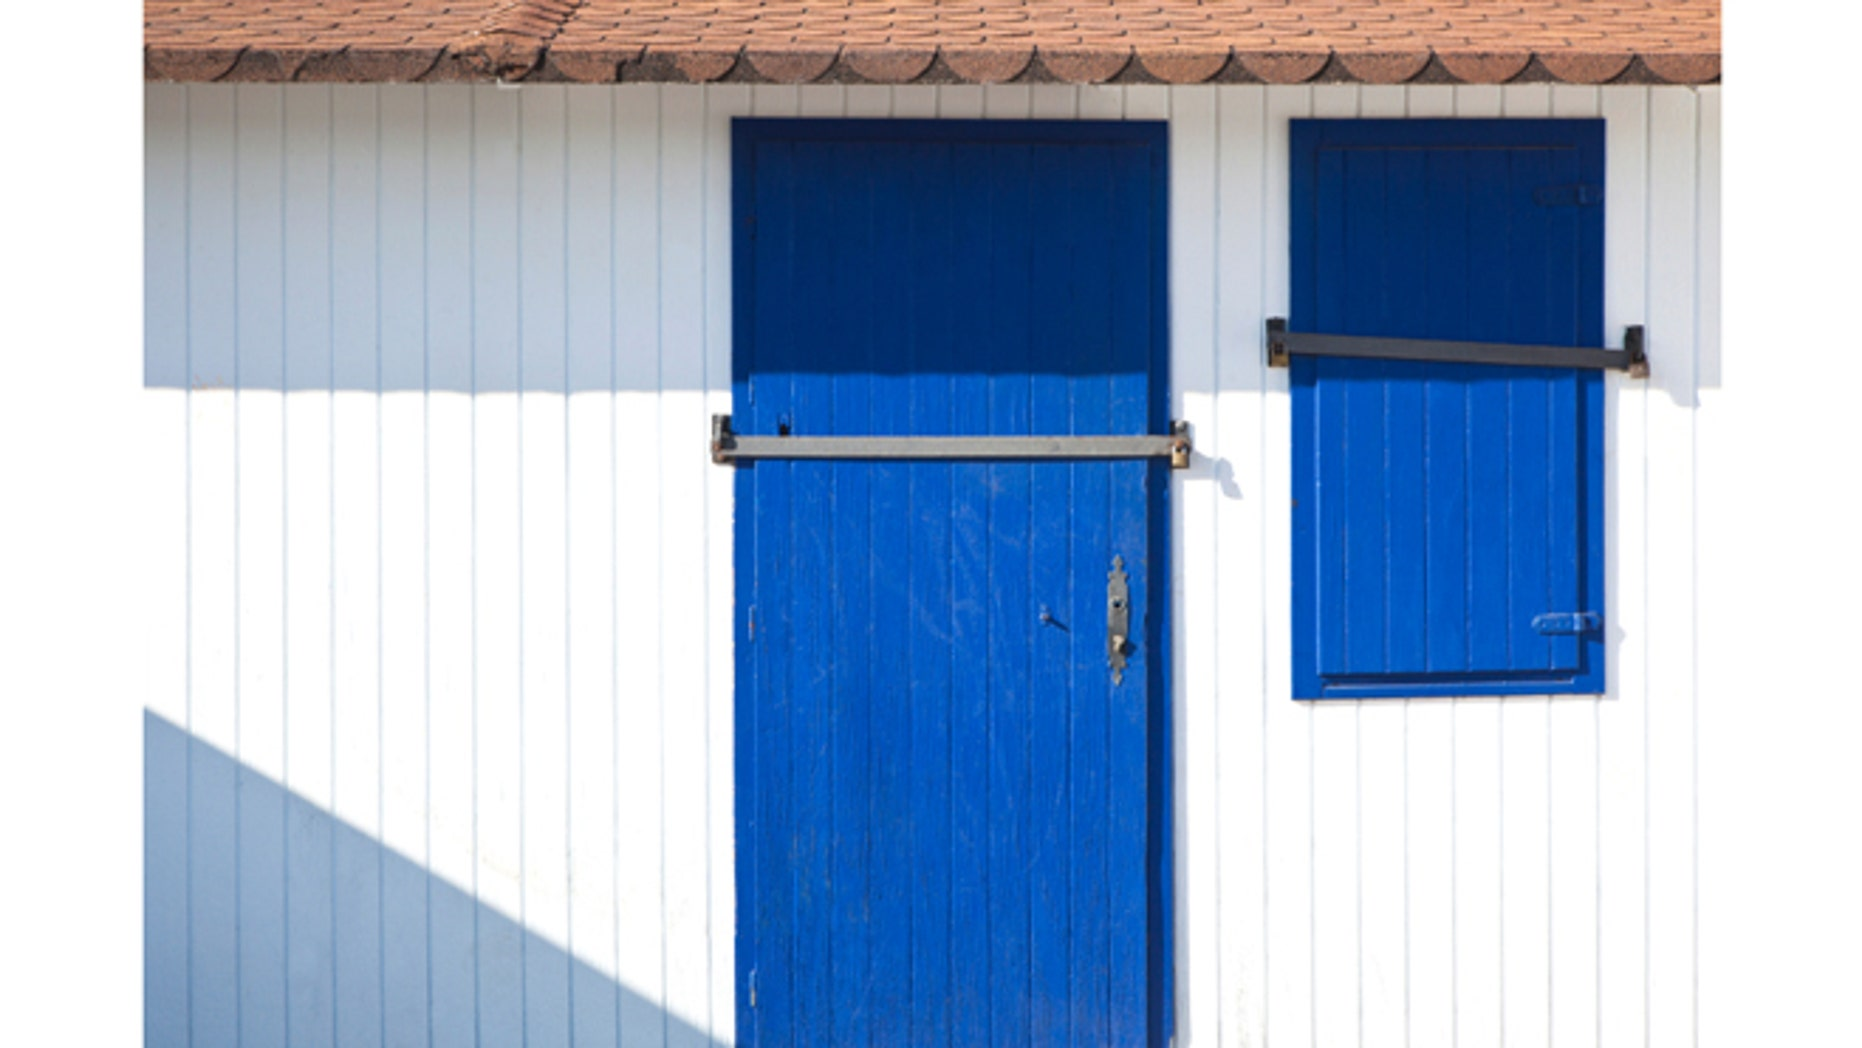 Blue door and window of a closed beach hut.